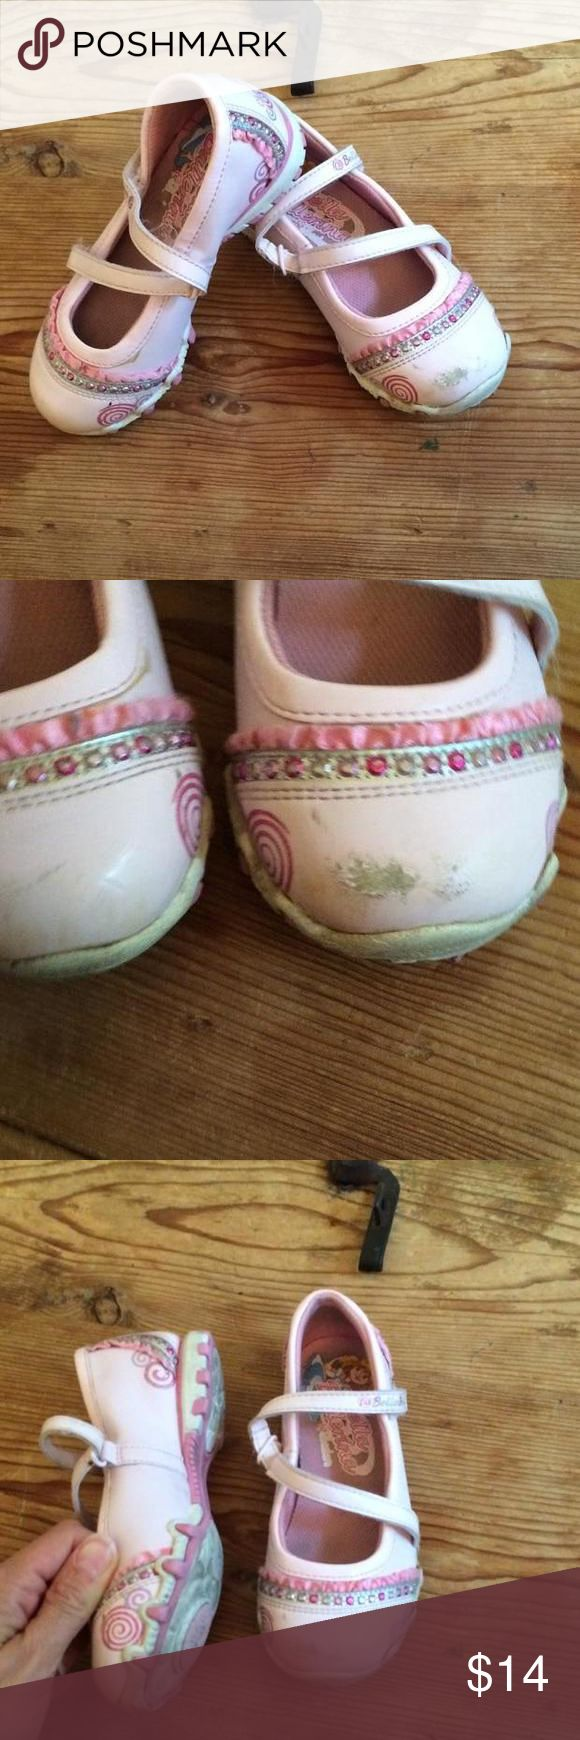 Skechers Bella Ballerina 10.5 spin shoes These are the Bella Ballerina shoes by Skechers that have the little spinning circles on the soles so you can twirl to your heart's content. A little toe scuffing, but otherwise lots of prancing & dancing life left. Skechers Shoes